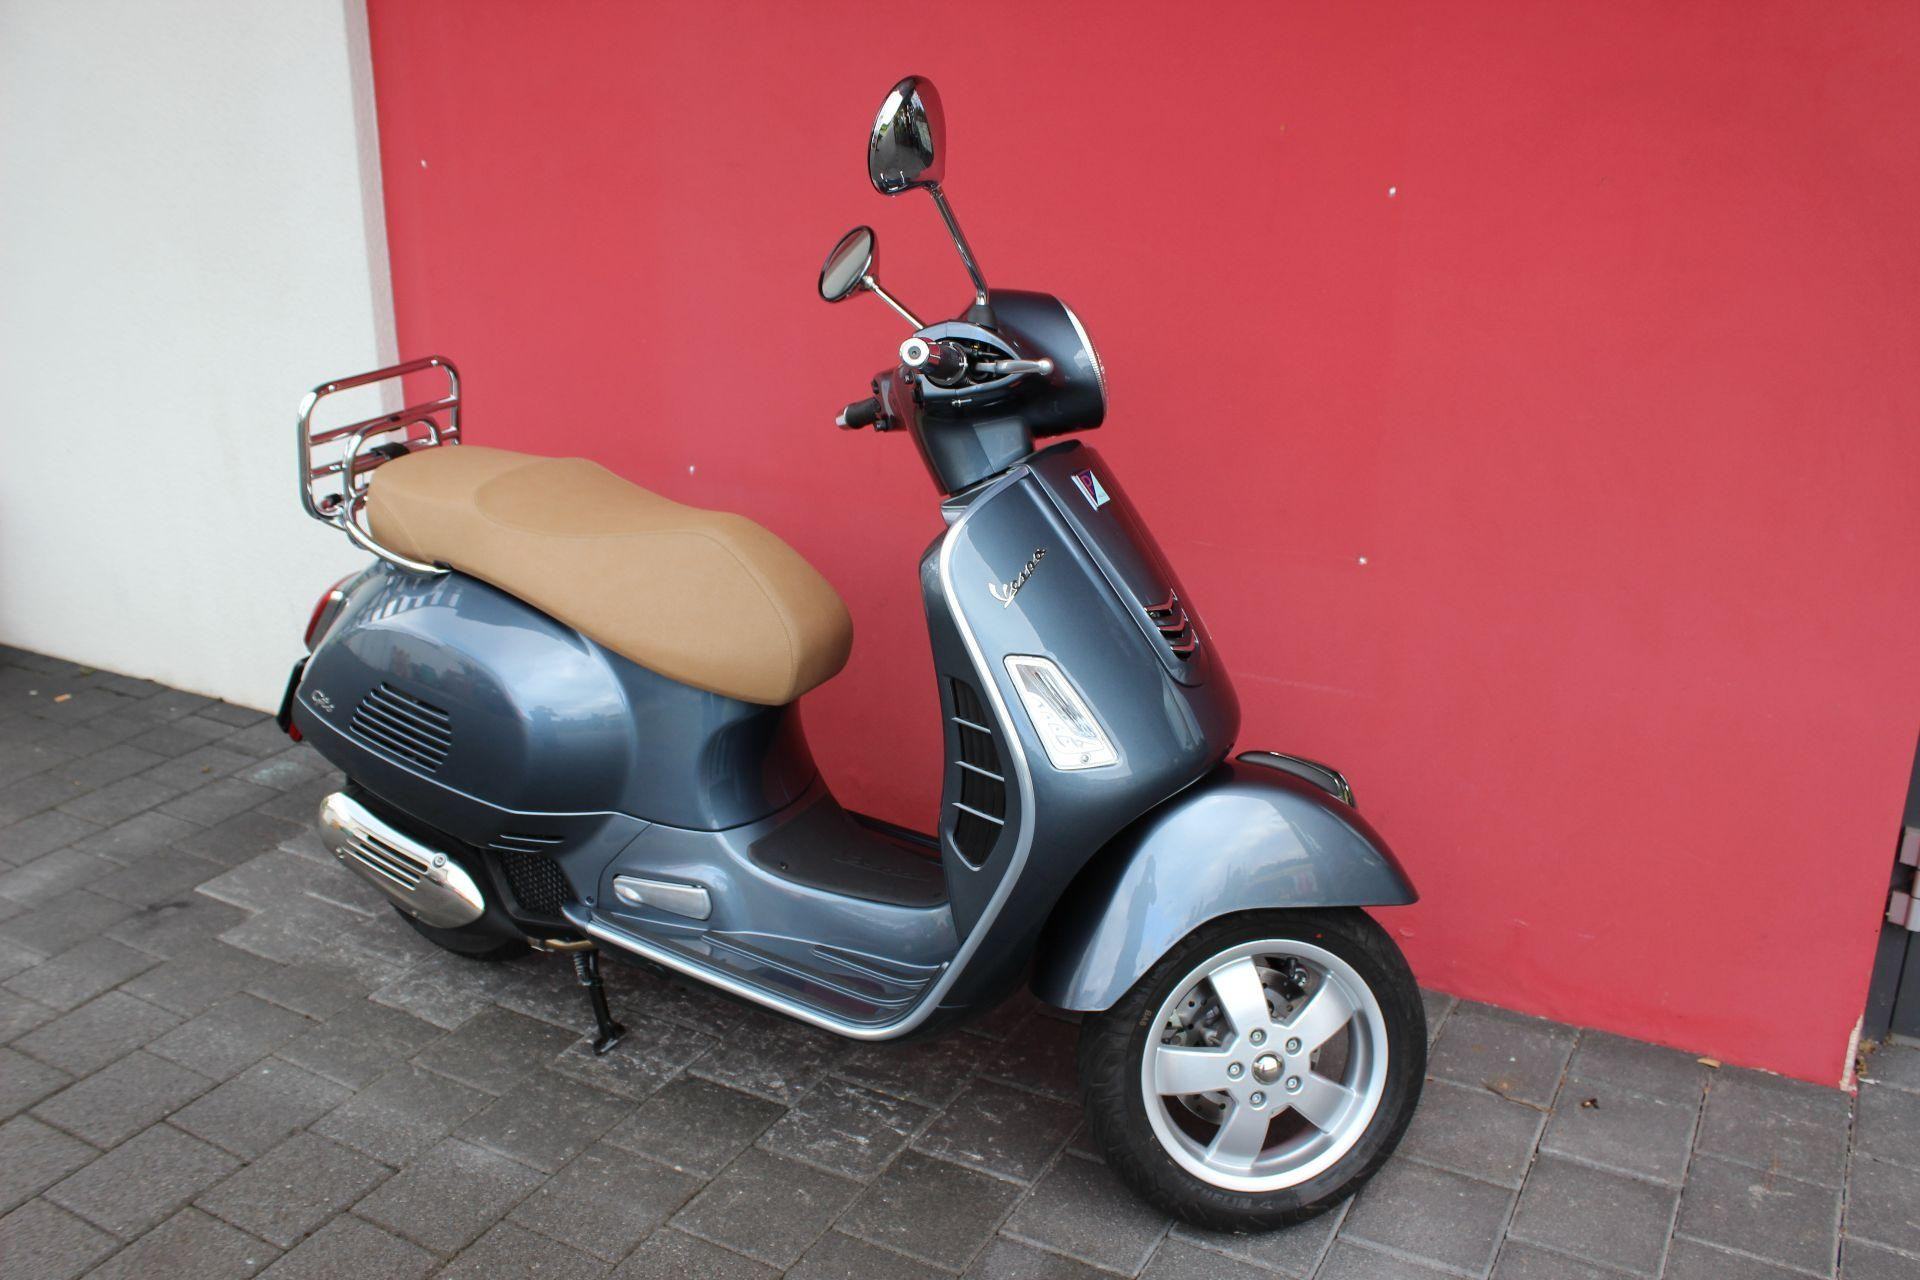 motorrad occasion kaufen piaggio vespa gts 125 hans leupi gmbh meggen. Black Bedroom Furniture Sets. Home Design Ideas